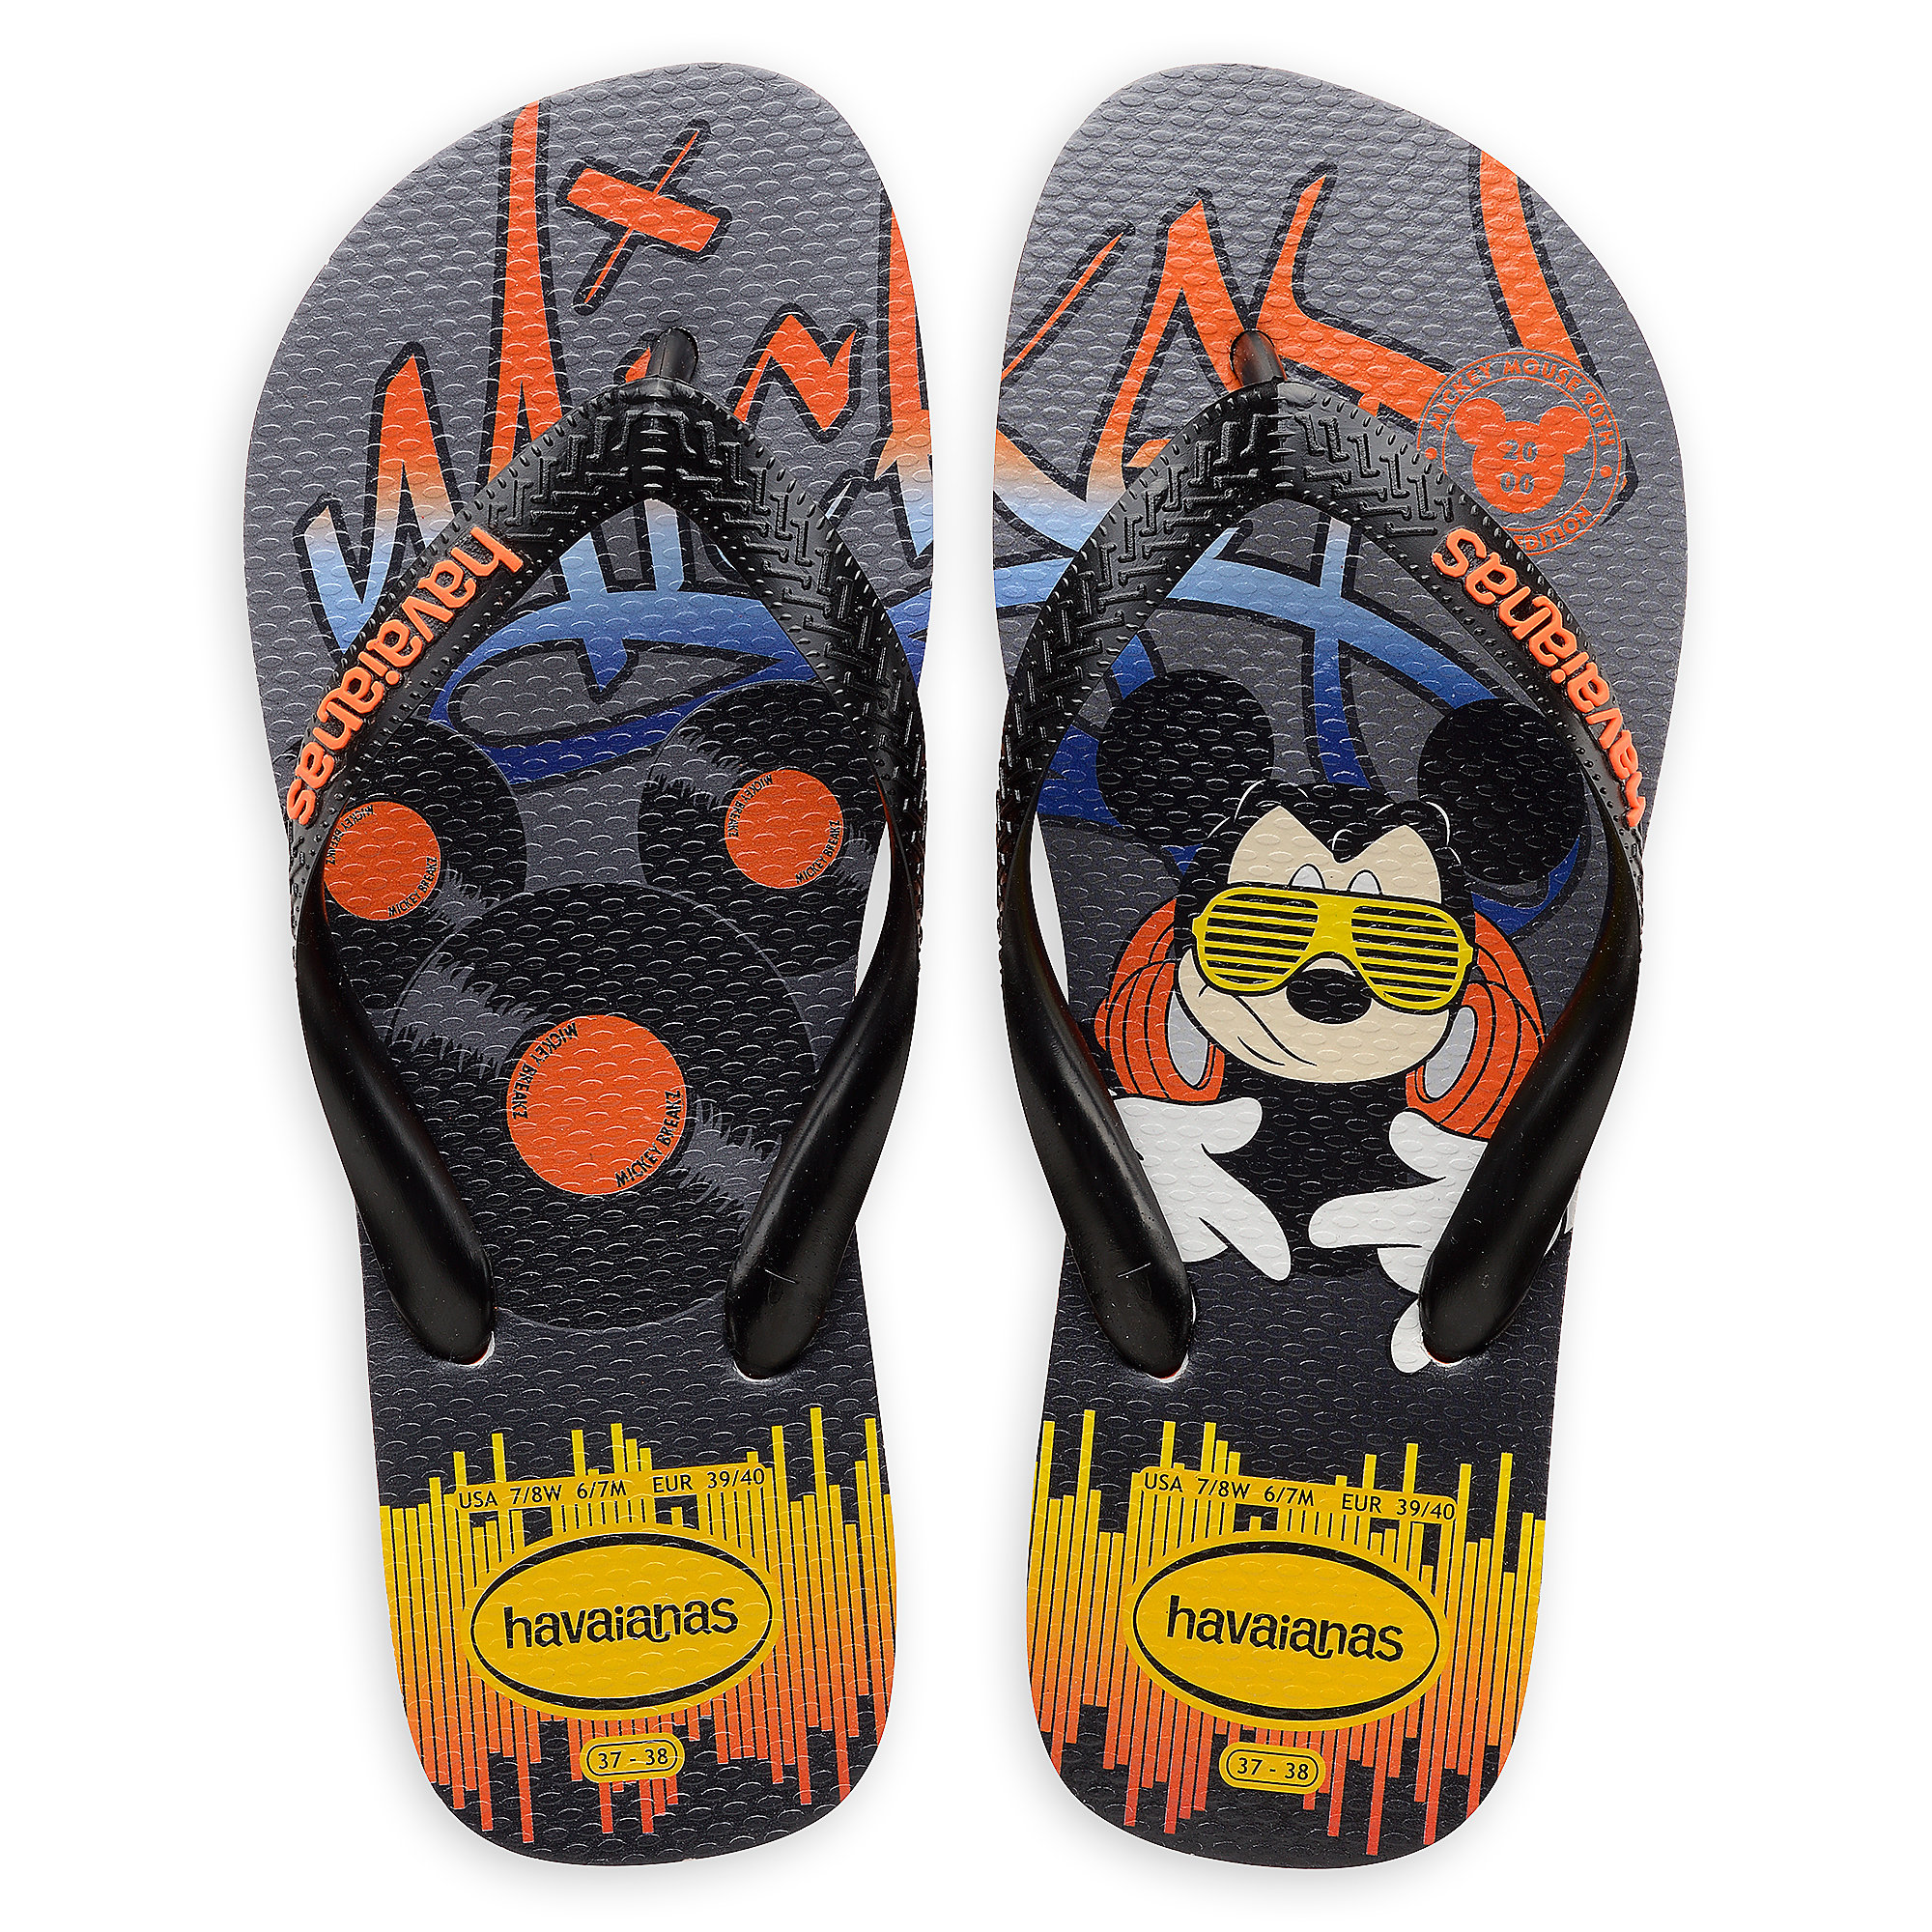 8d43fe2d7f472 Mickey Mouse Hip Hop Flip Flops for Adults by Havaianas - 2000s now ...